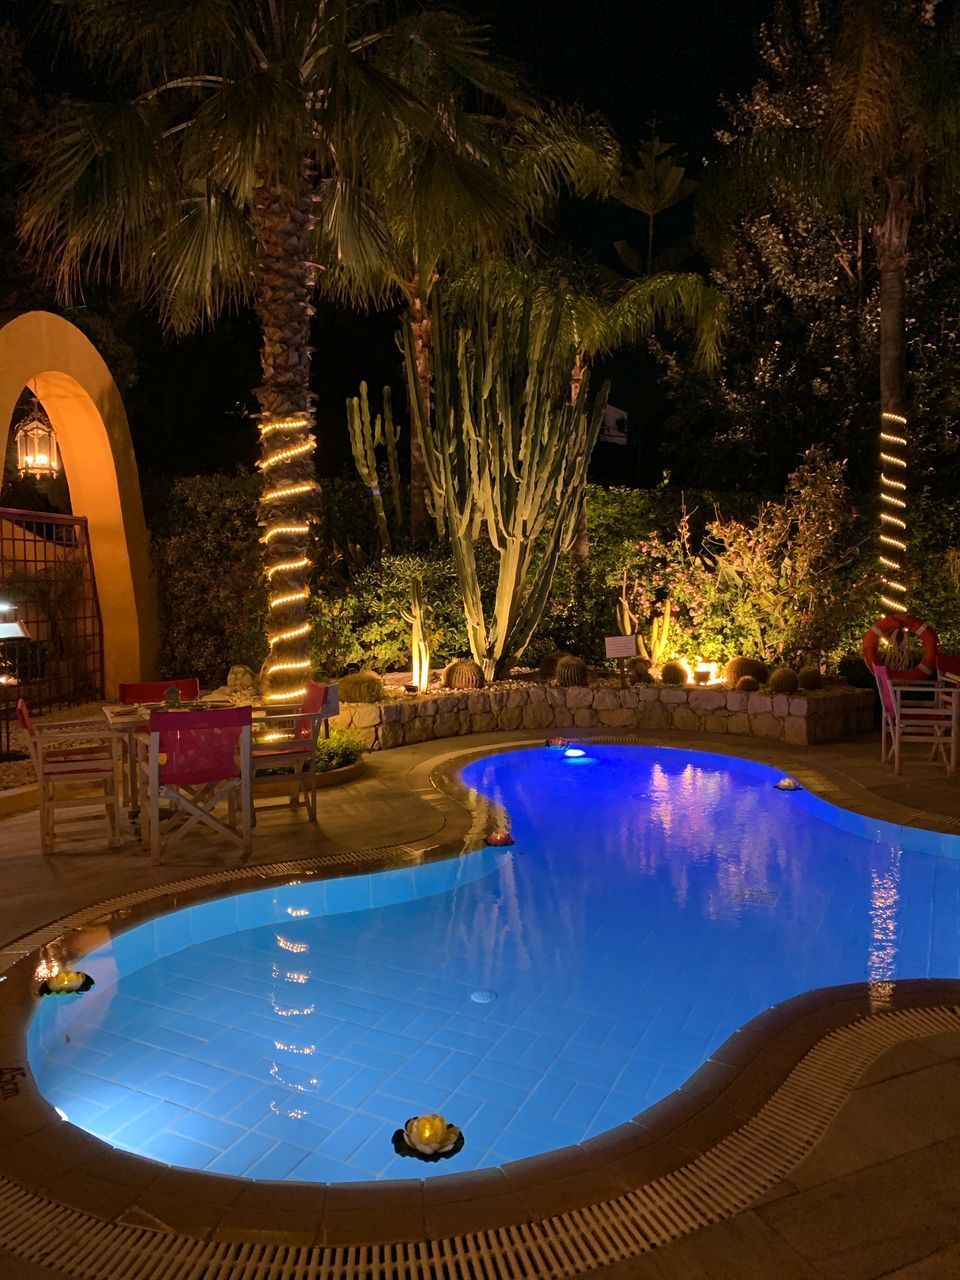 swimming pool, pool, water, tree, plant, nature, luxury, illuminated, night, no people, wealth, outdoors, absence, front or back yard, poolside, hot tub, reflection, relaxation, tranquility